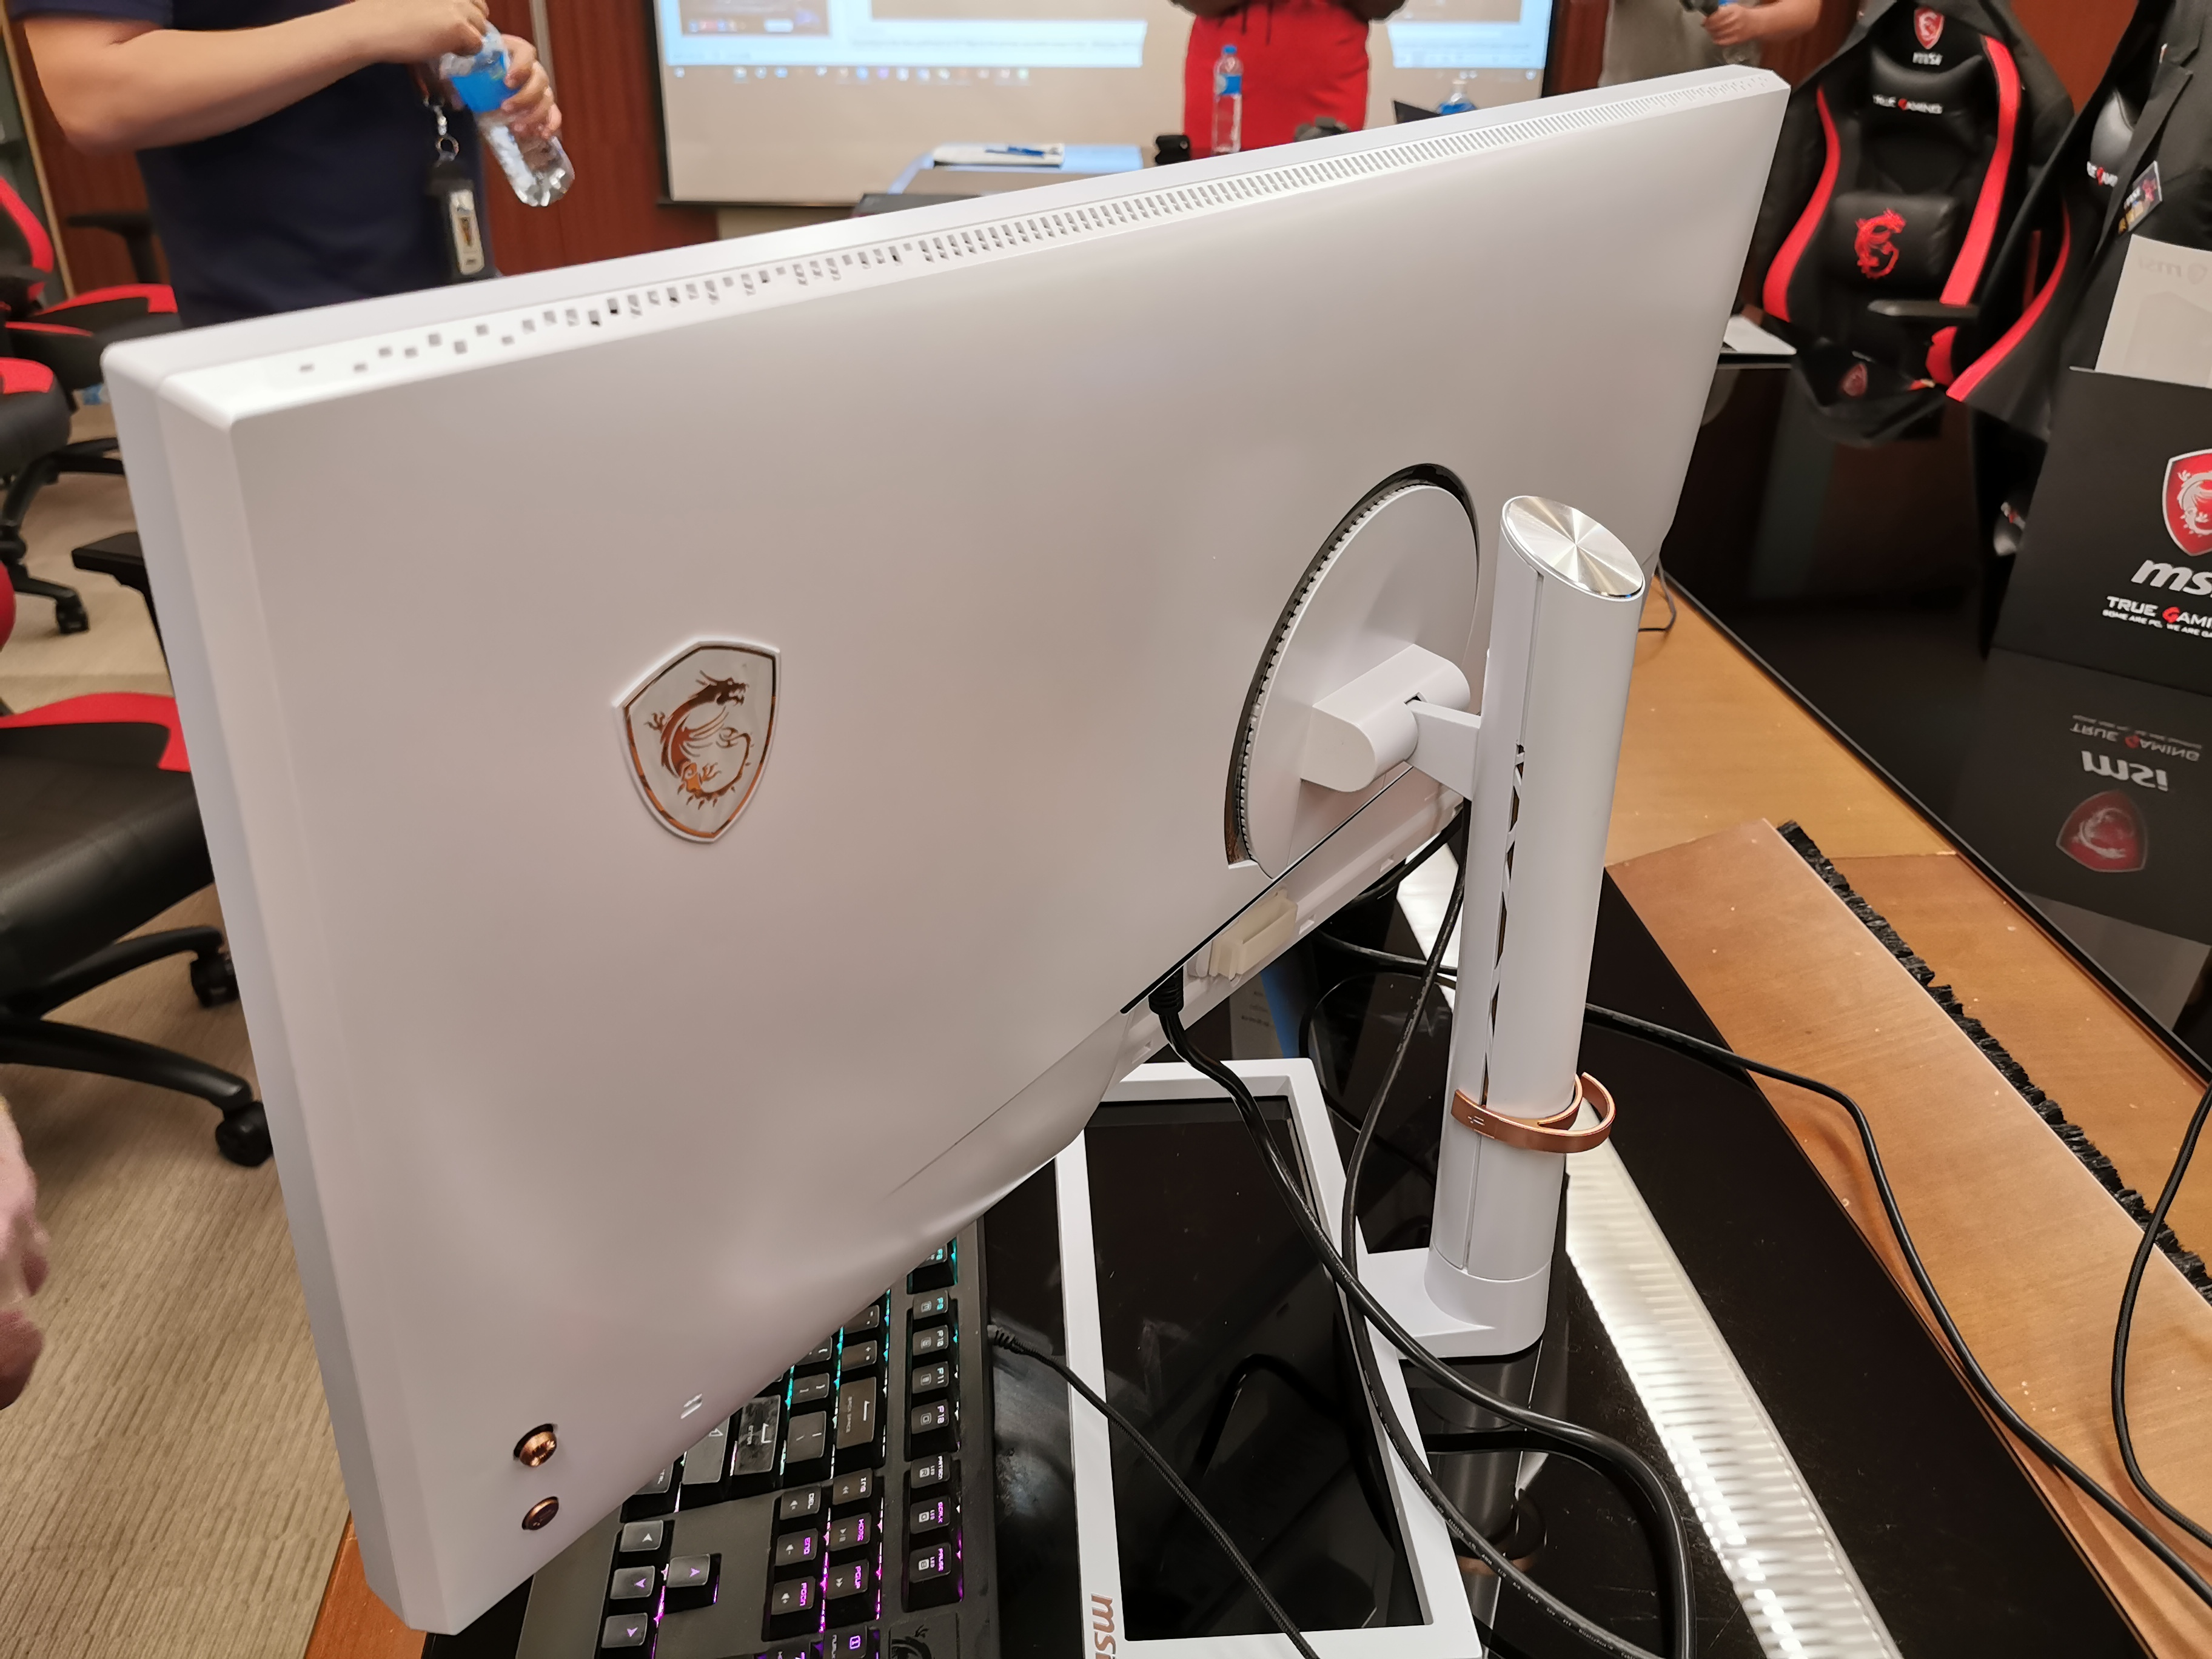 MSI's New 5Kx2K 34-inch Monitor, with 98% DCI-P3: PS341WU